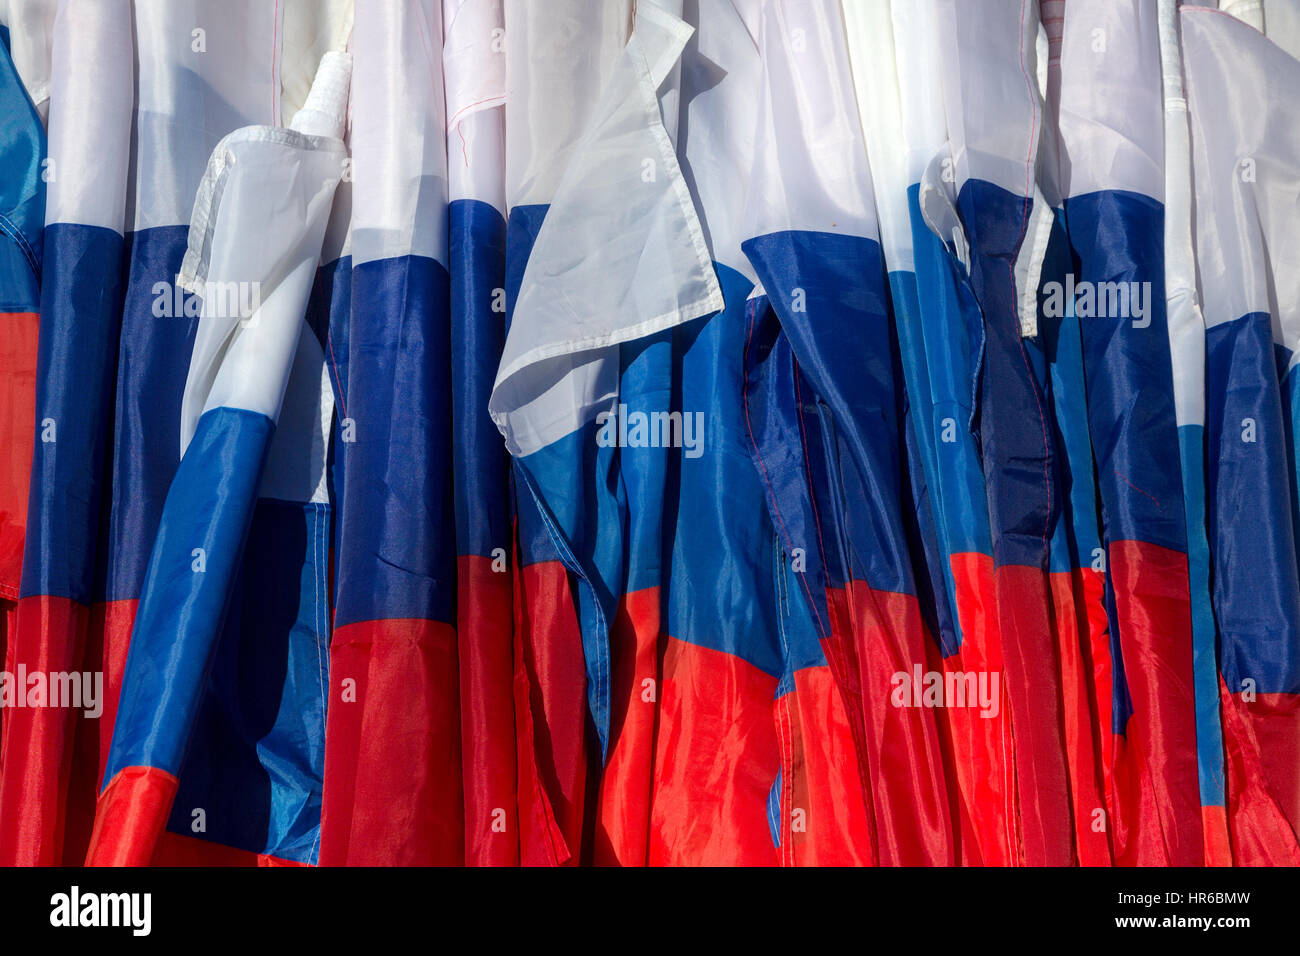 Many flags of Russian Federation during a public event - Stock Image